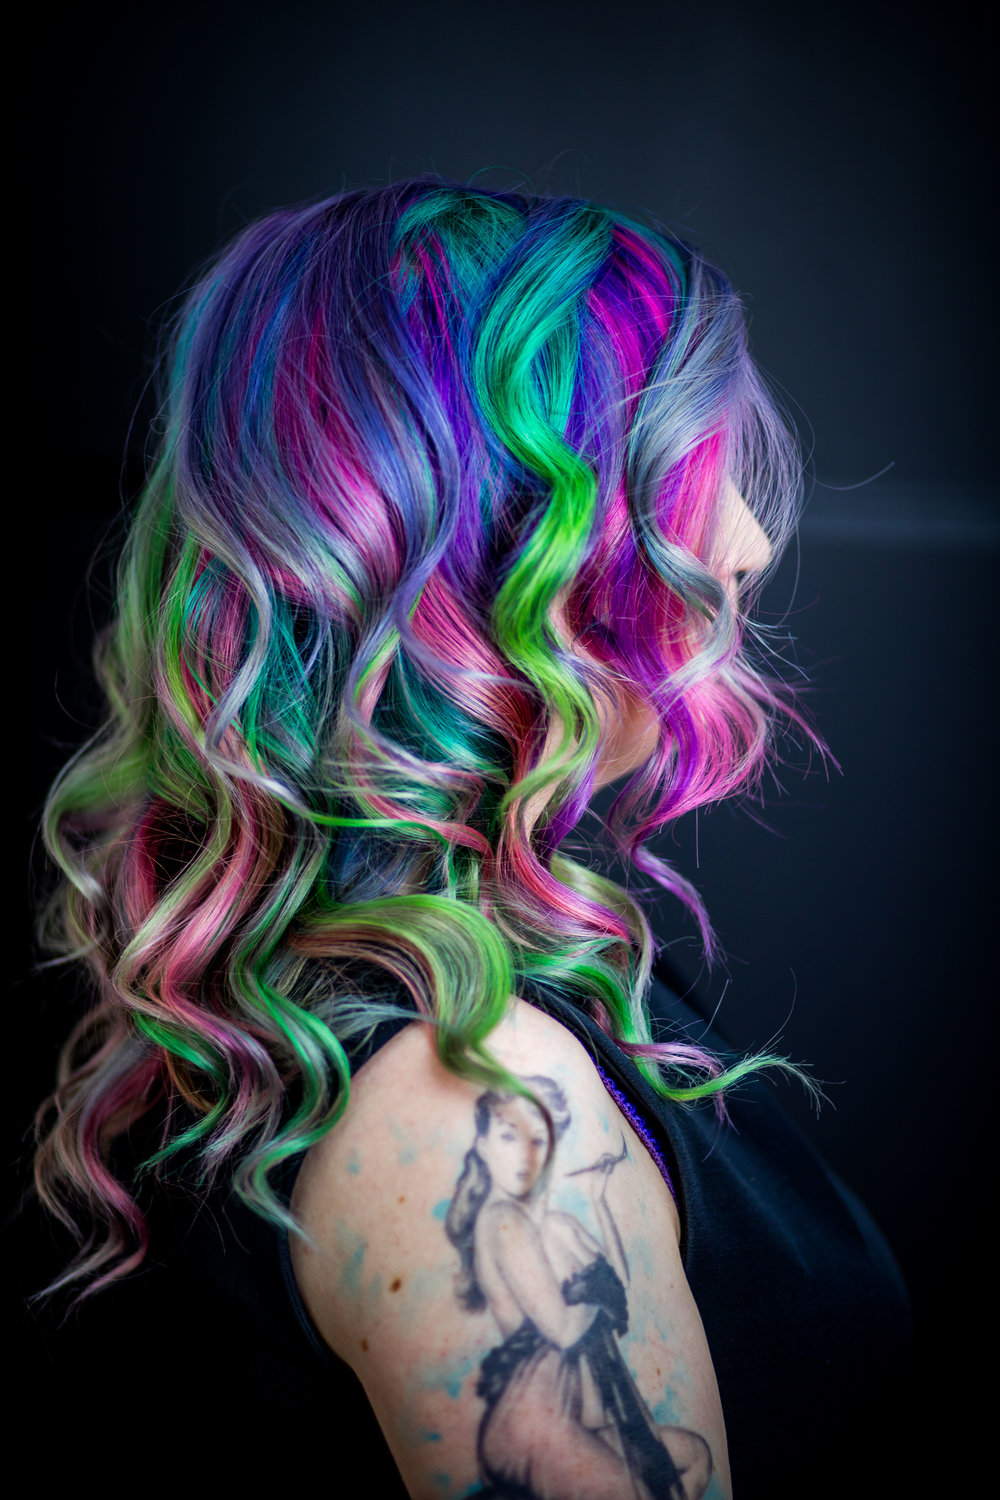 hair.color.art 2018-8070.jpg